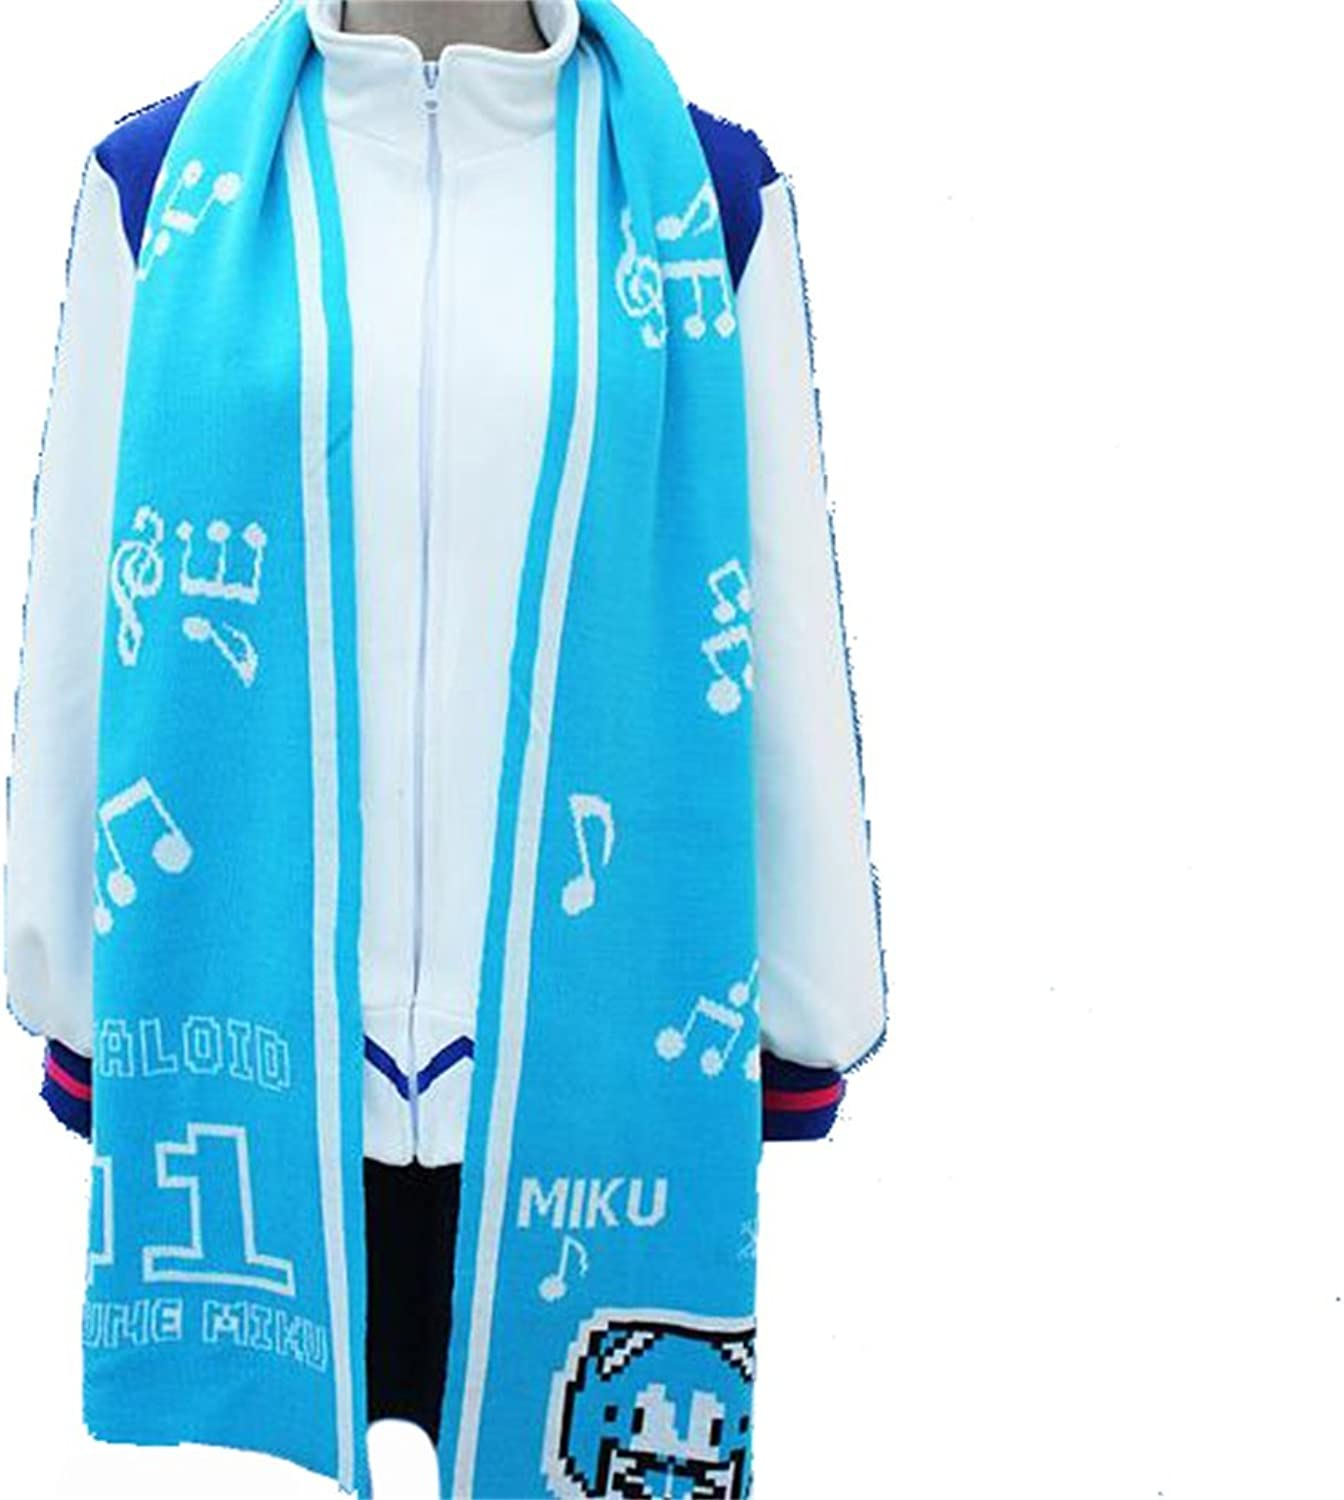 Vocaloid Snow Miku Winter top Jacket Hoodie Coat cosplay costume pre made